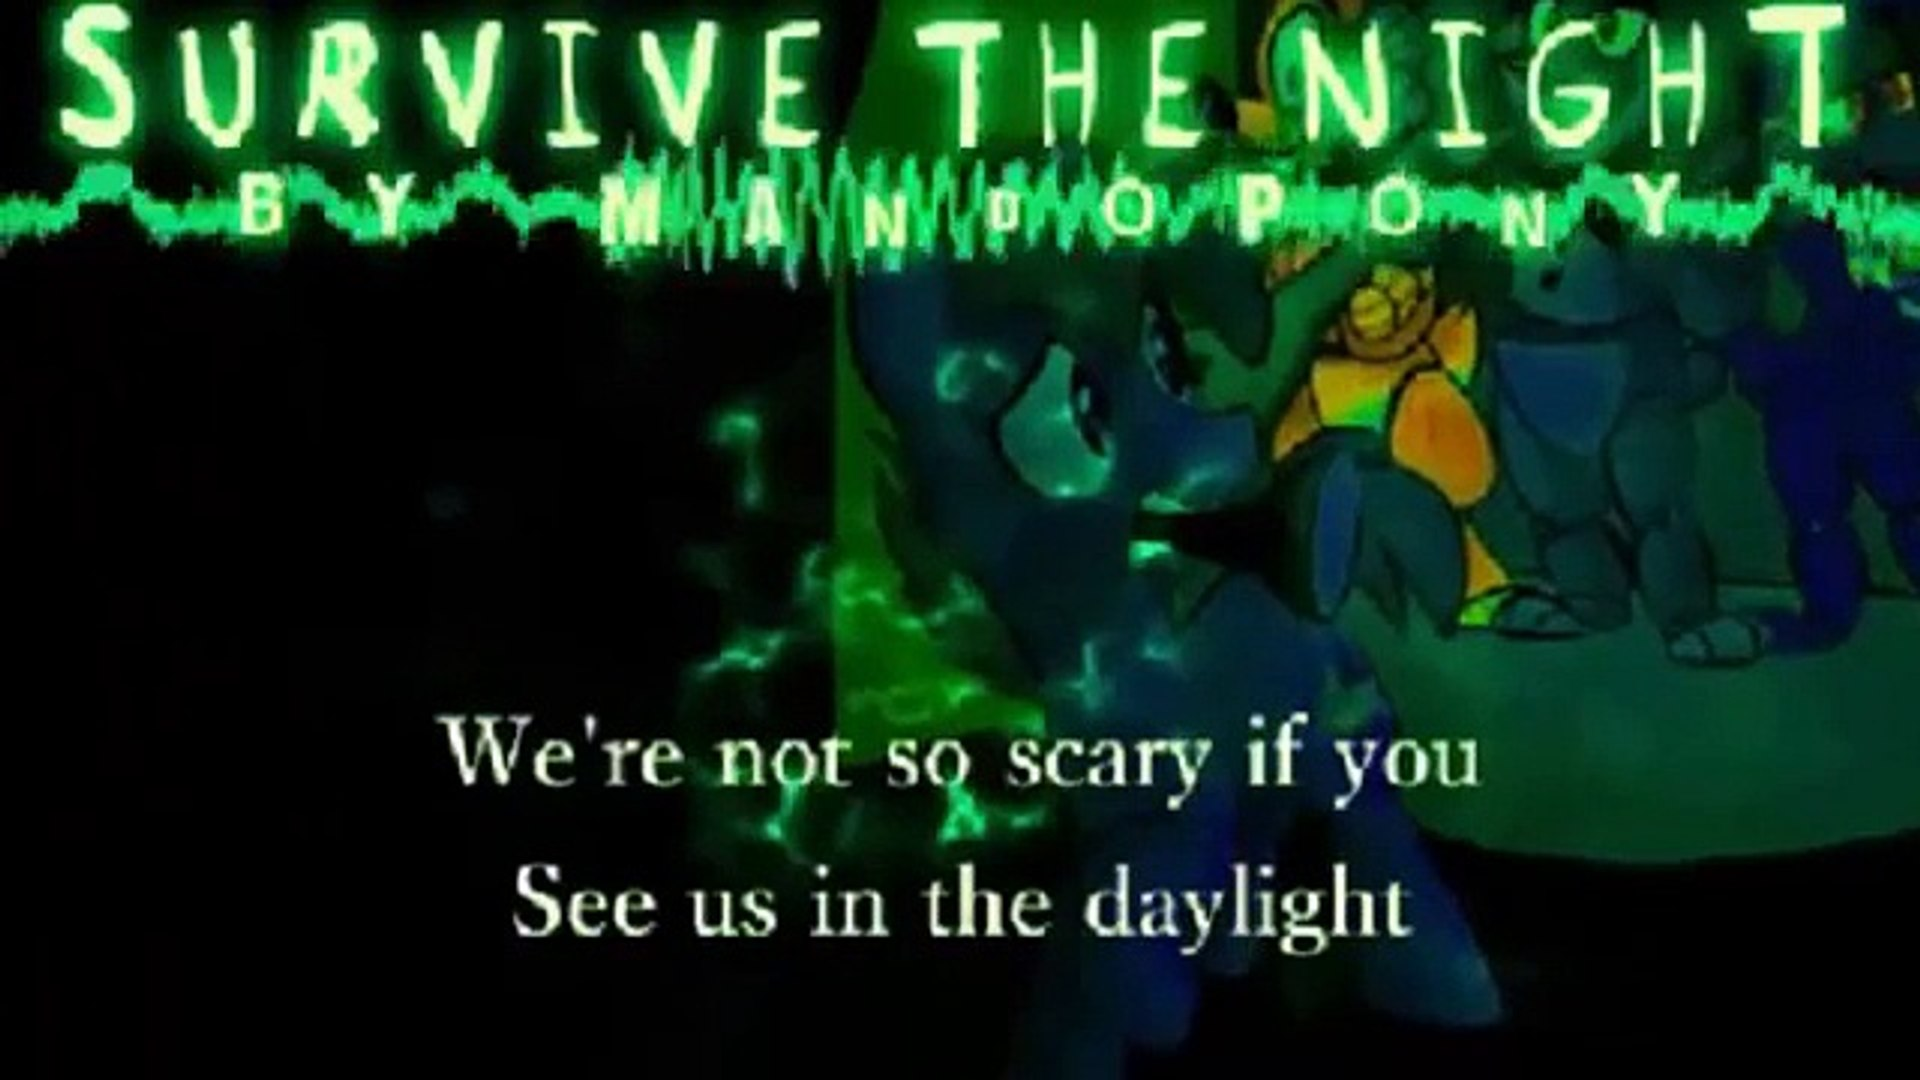 ✔ Survive The Night 1 Hour    MandoPony FNAF song    Five Nights At Freddys  2 Song